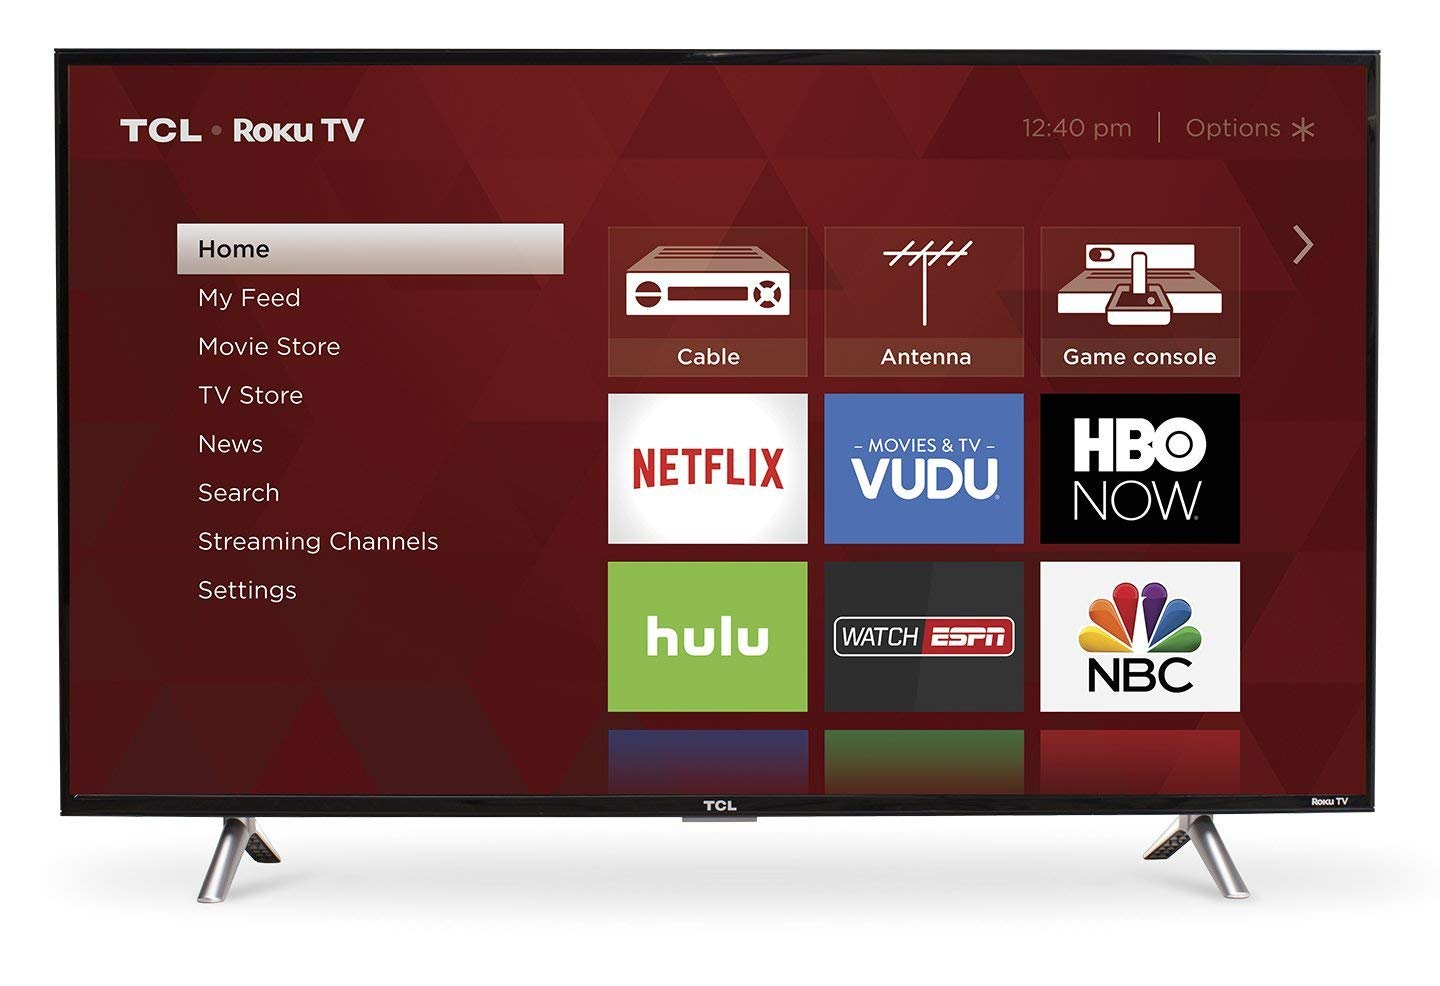 An image related to TCL 43S305 43-Inch FHD LED TV